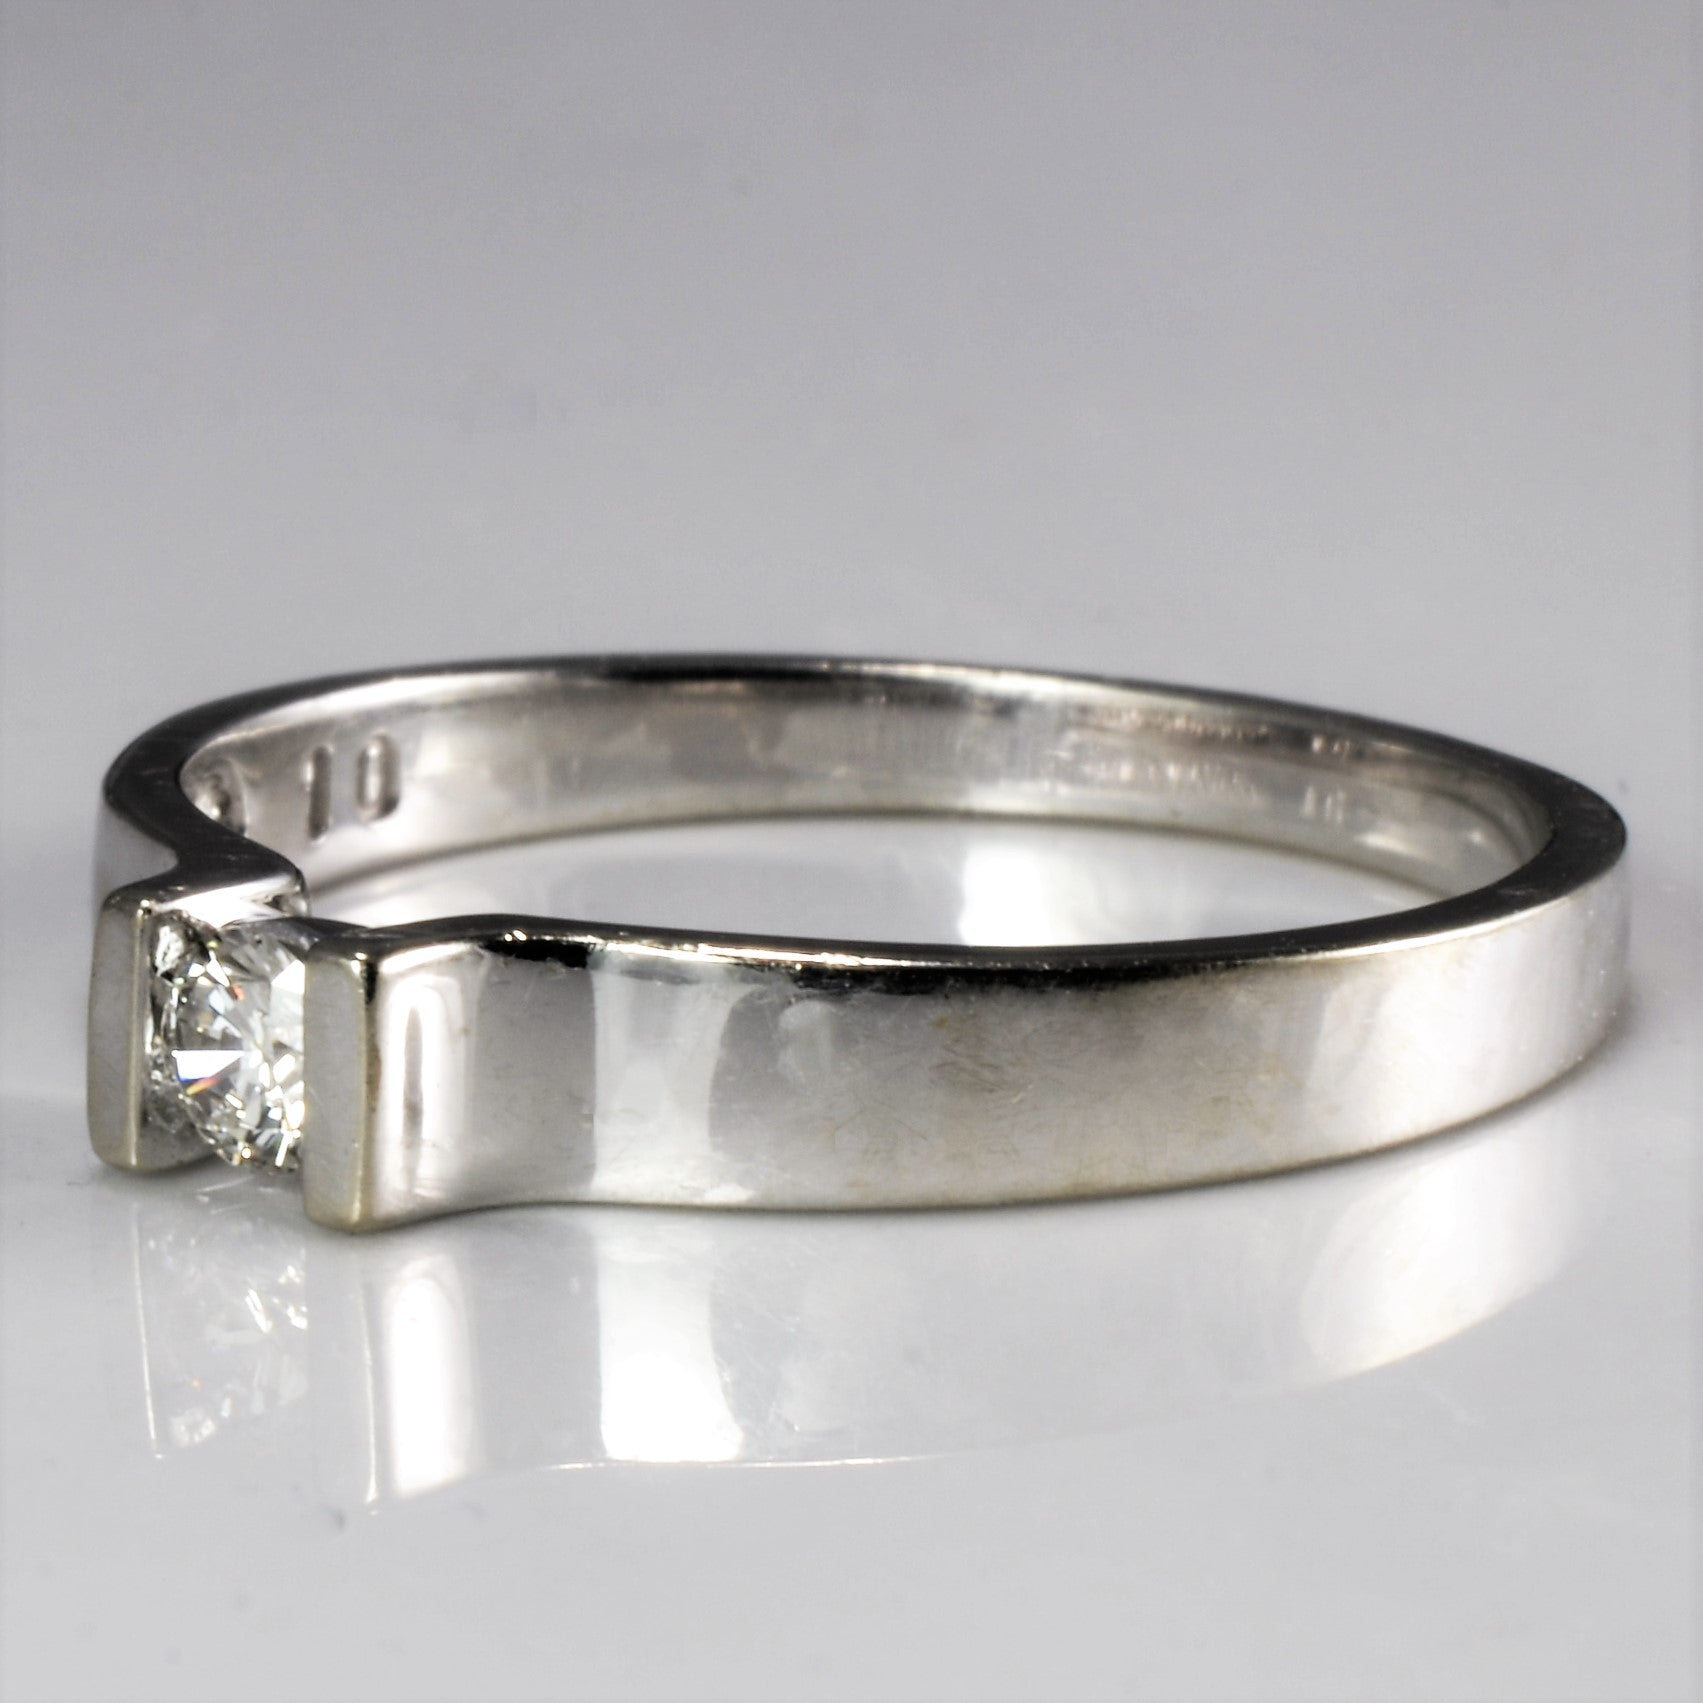 Semi Bezel Solitaire Diamond Ring | 0.10 ct, SZ 6.25 |